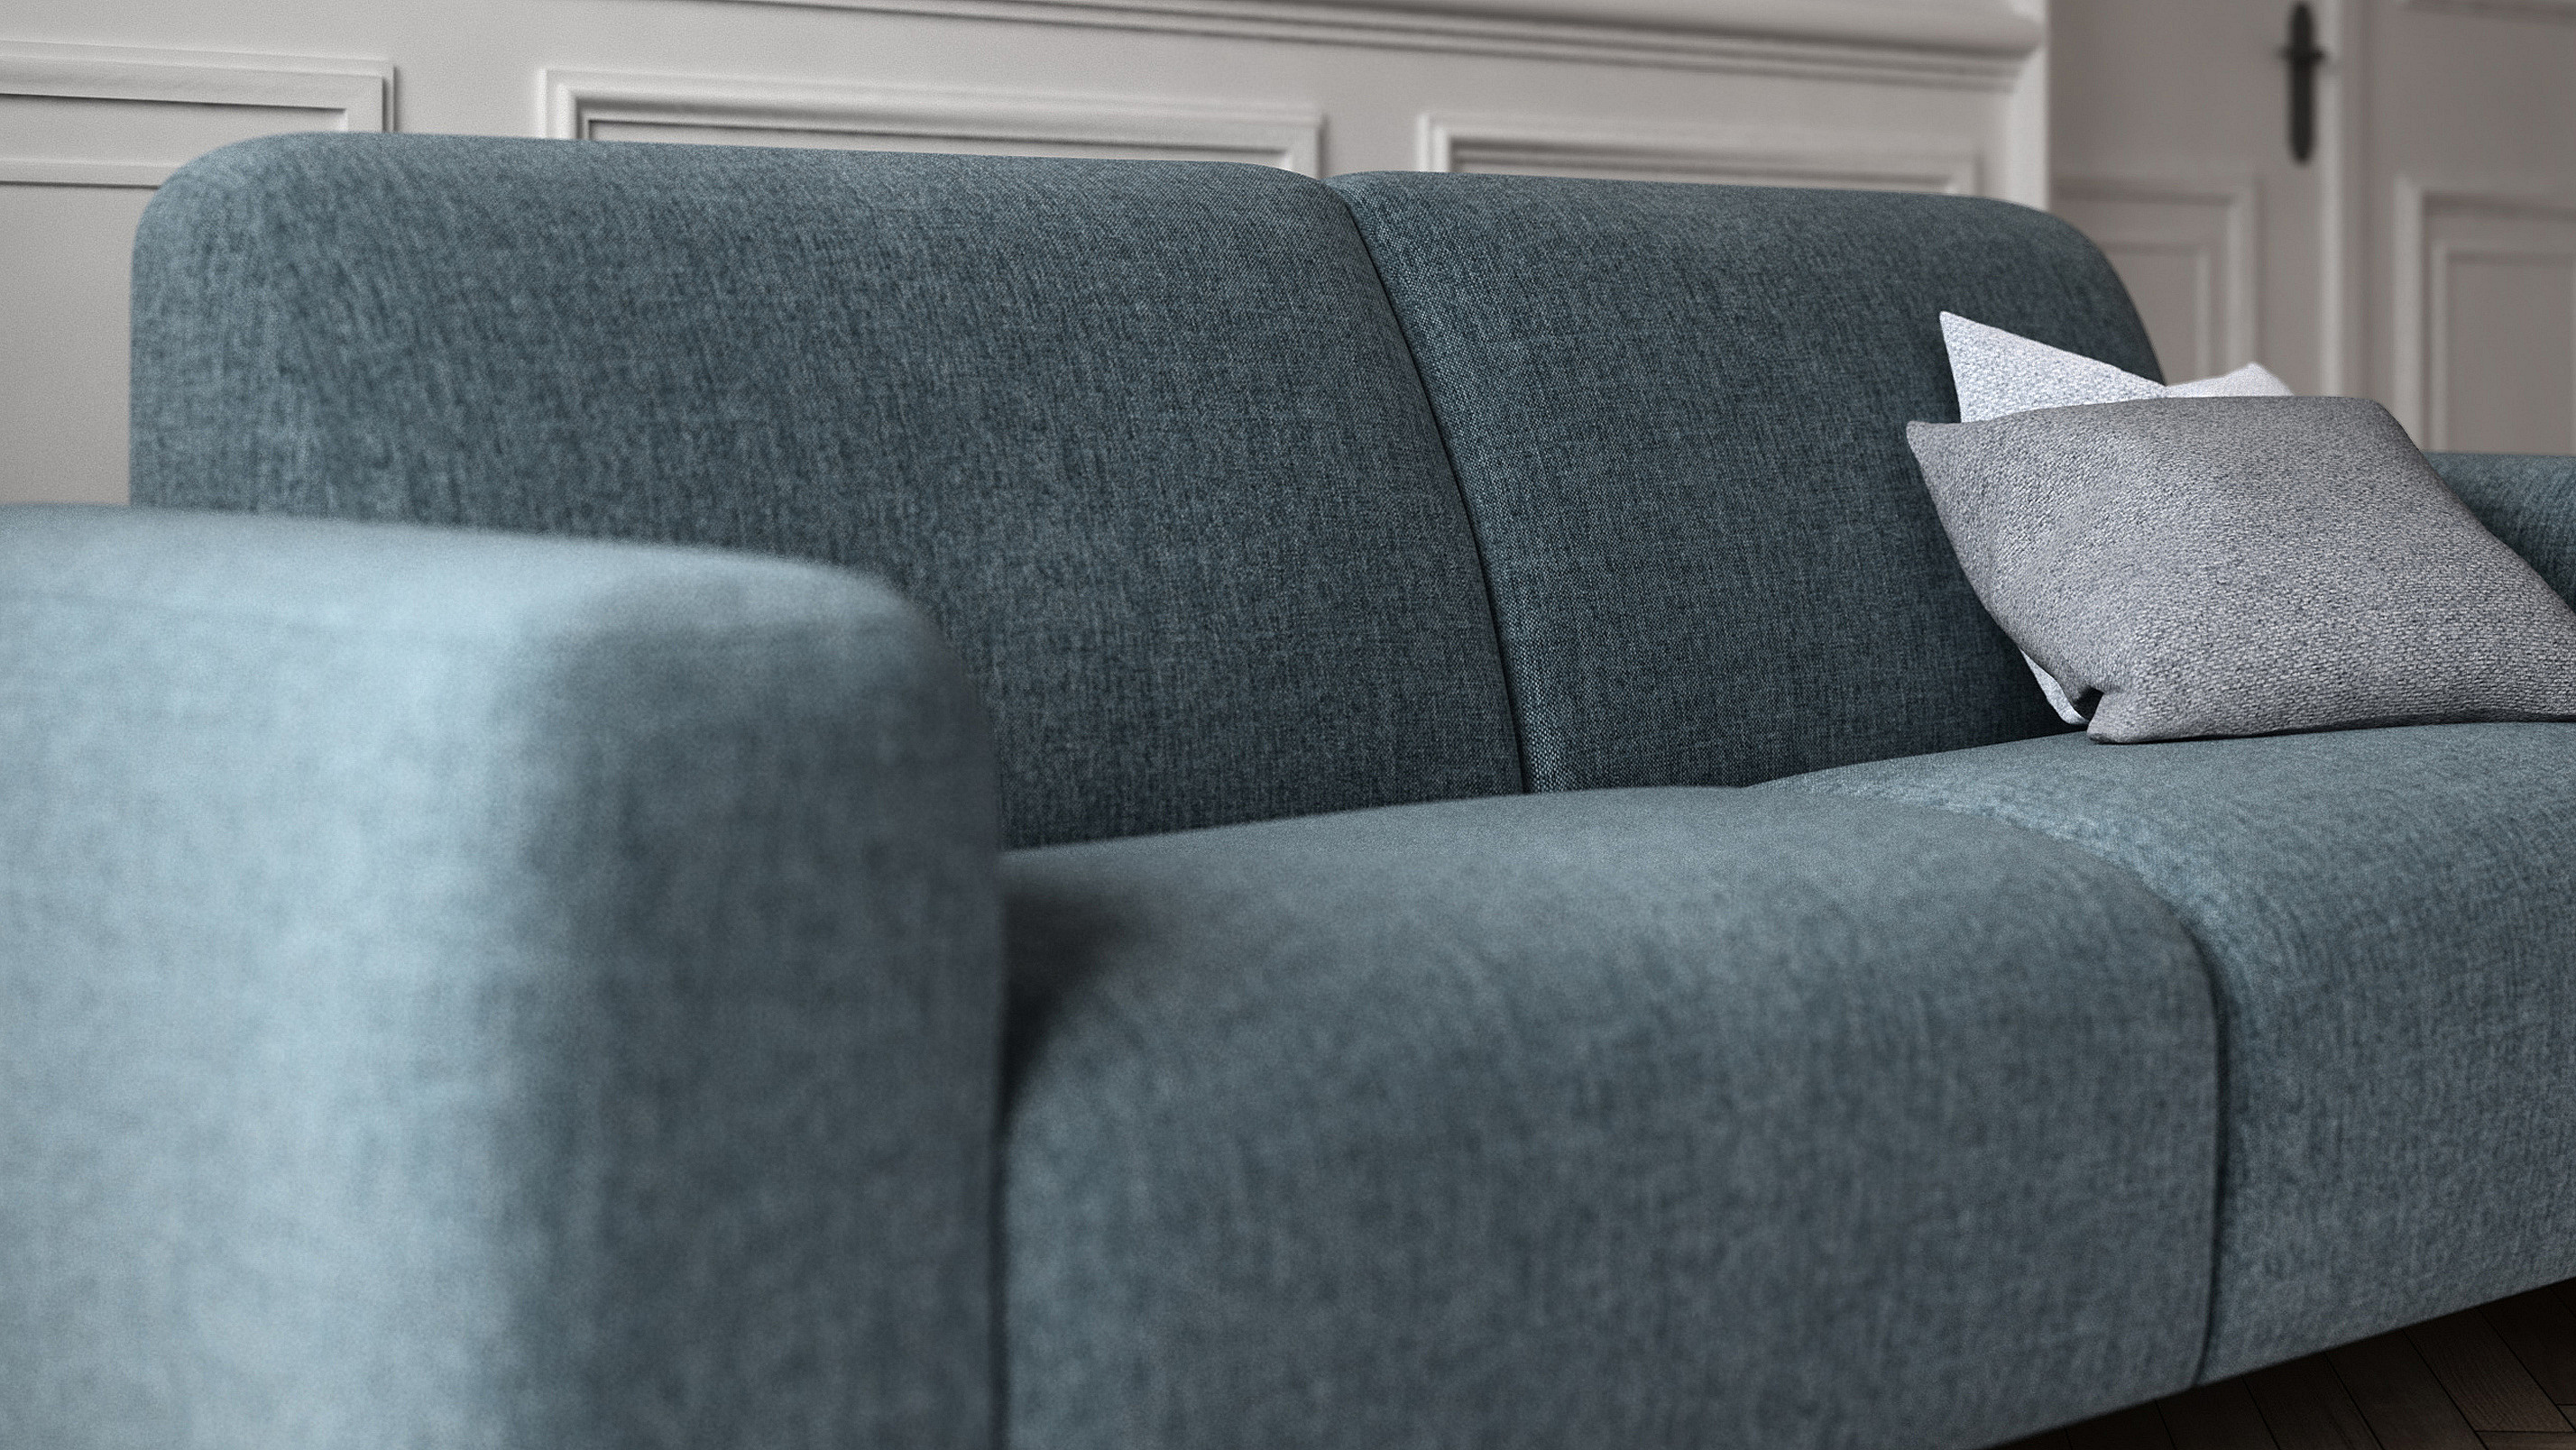 A close-up photo of the model Andora in ocean color.